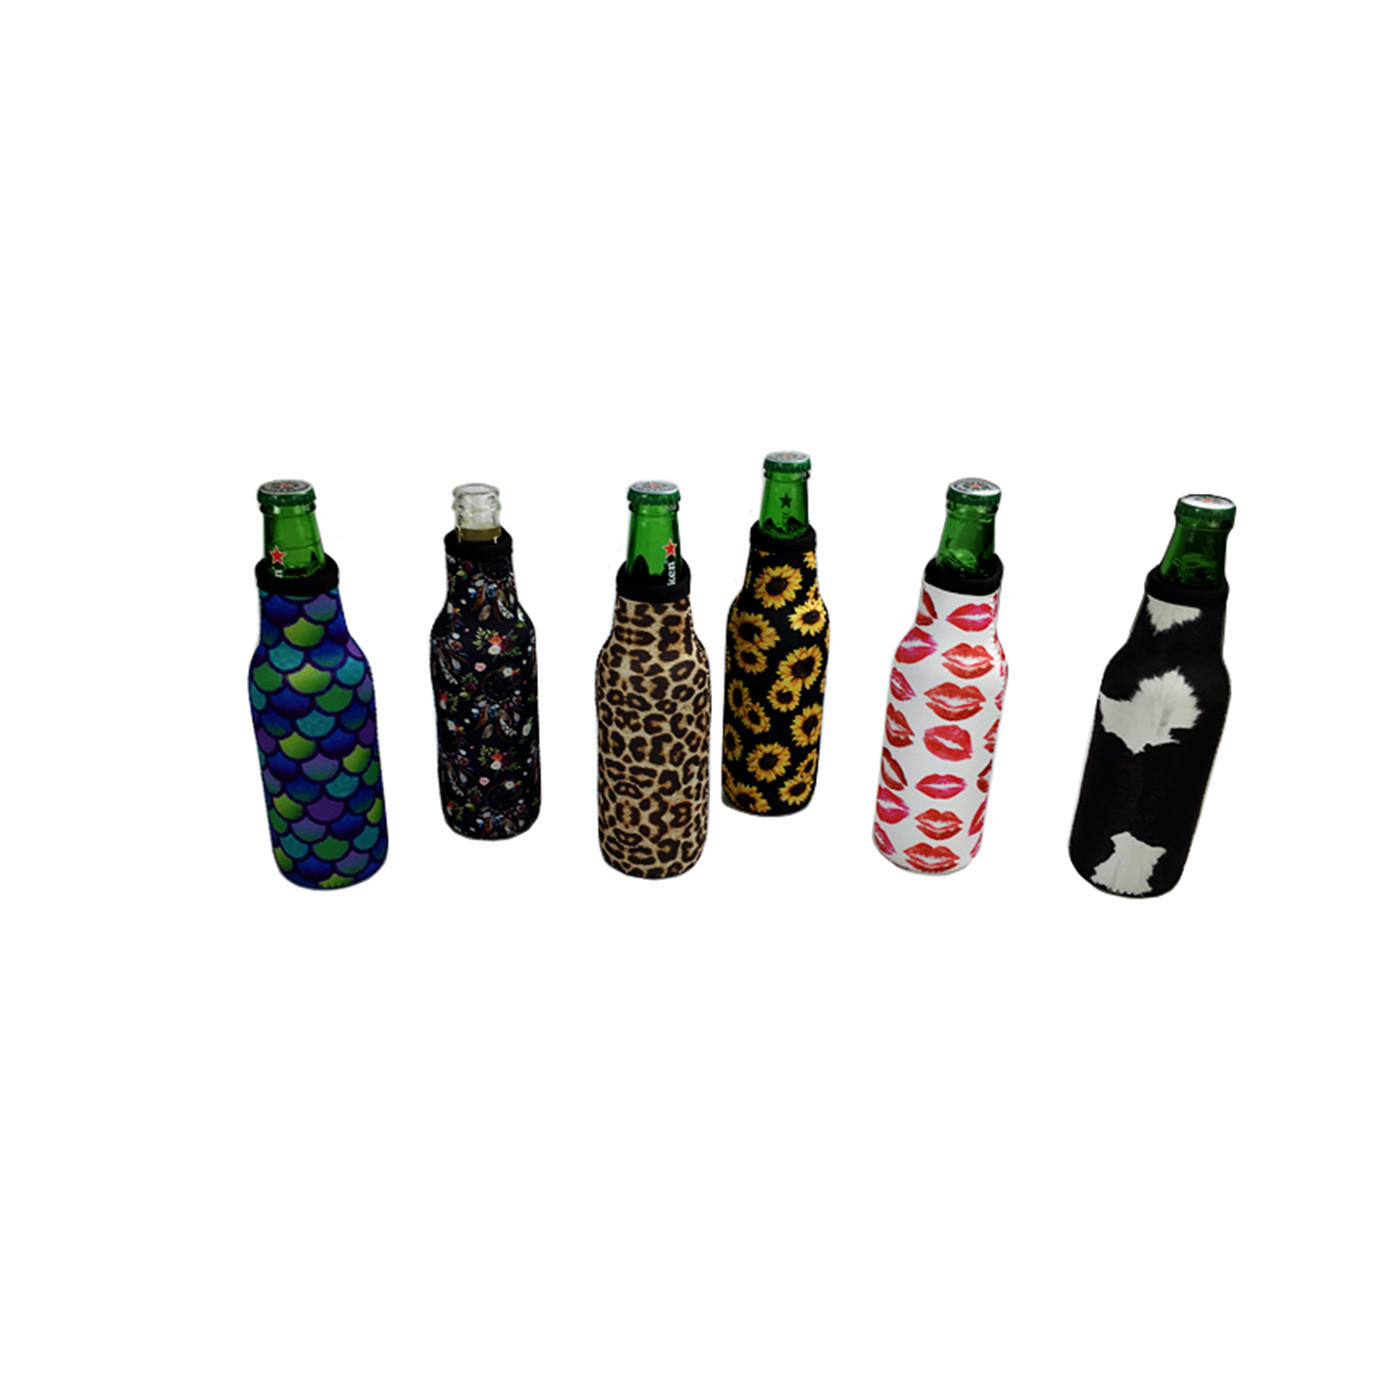 Hot Sale Botol Bir Cooler Holder Cow Hide Bunga Matahari Leopard Botol Bir Koozies